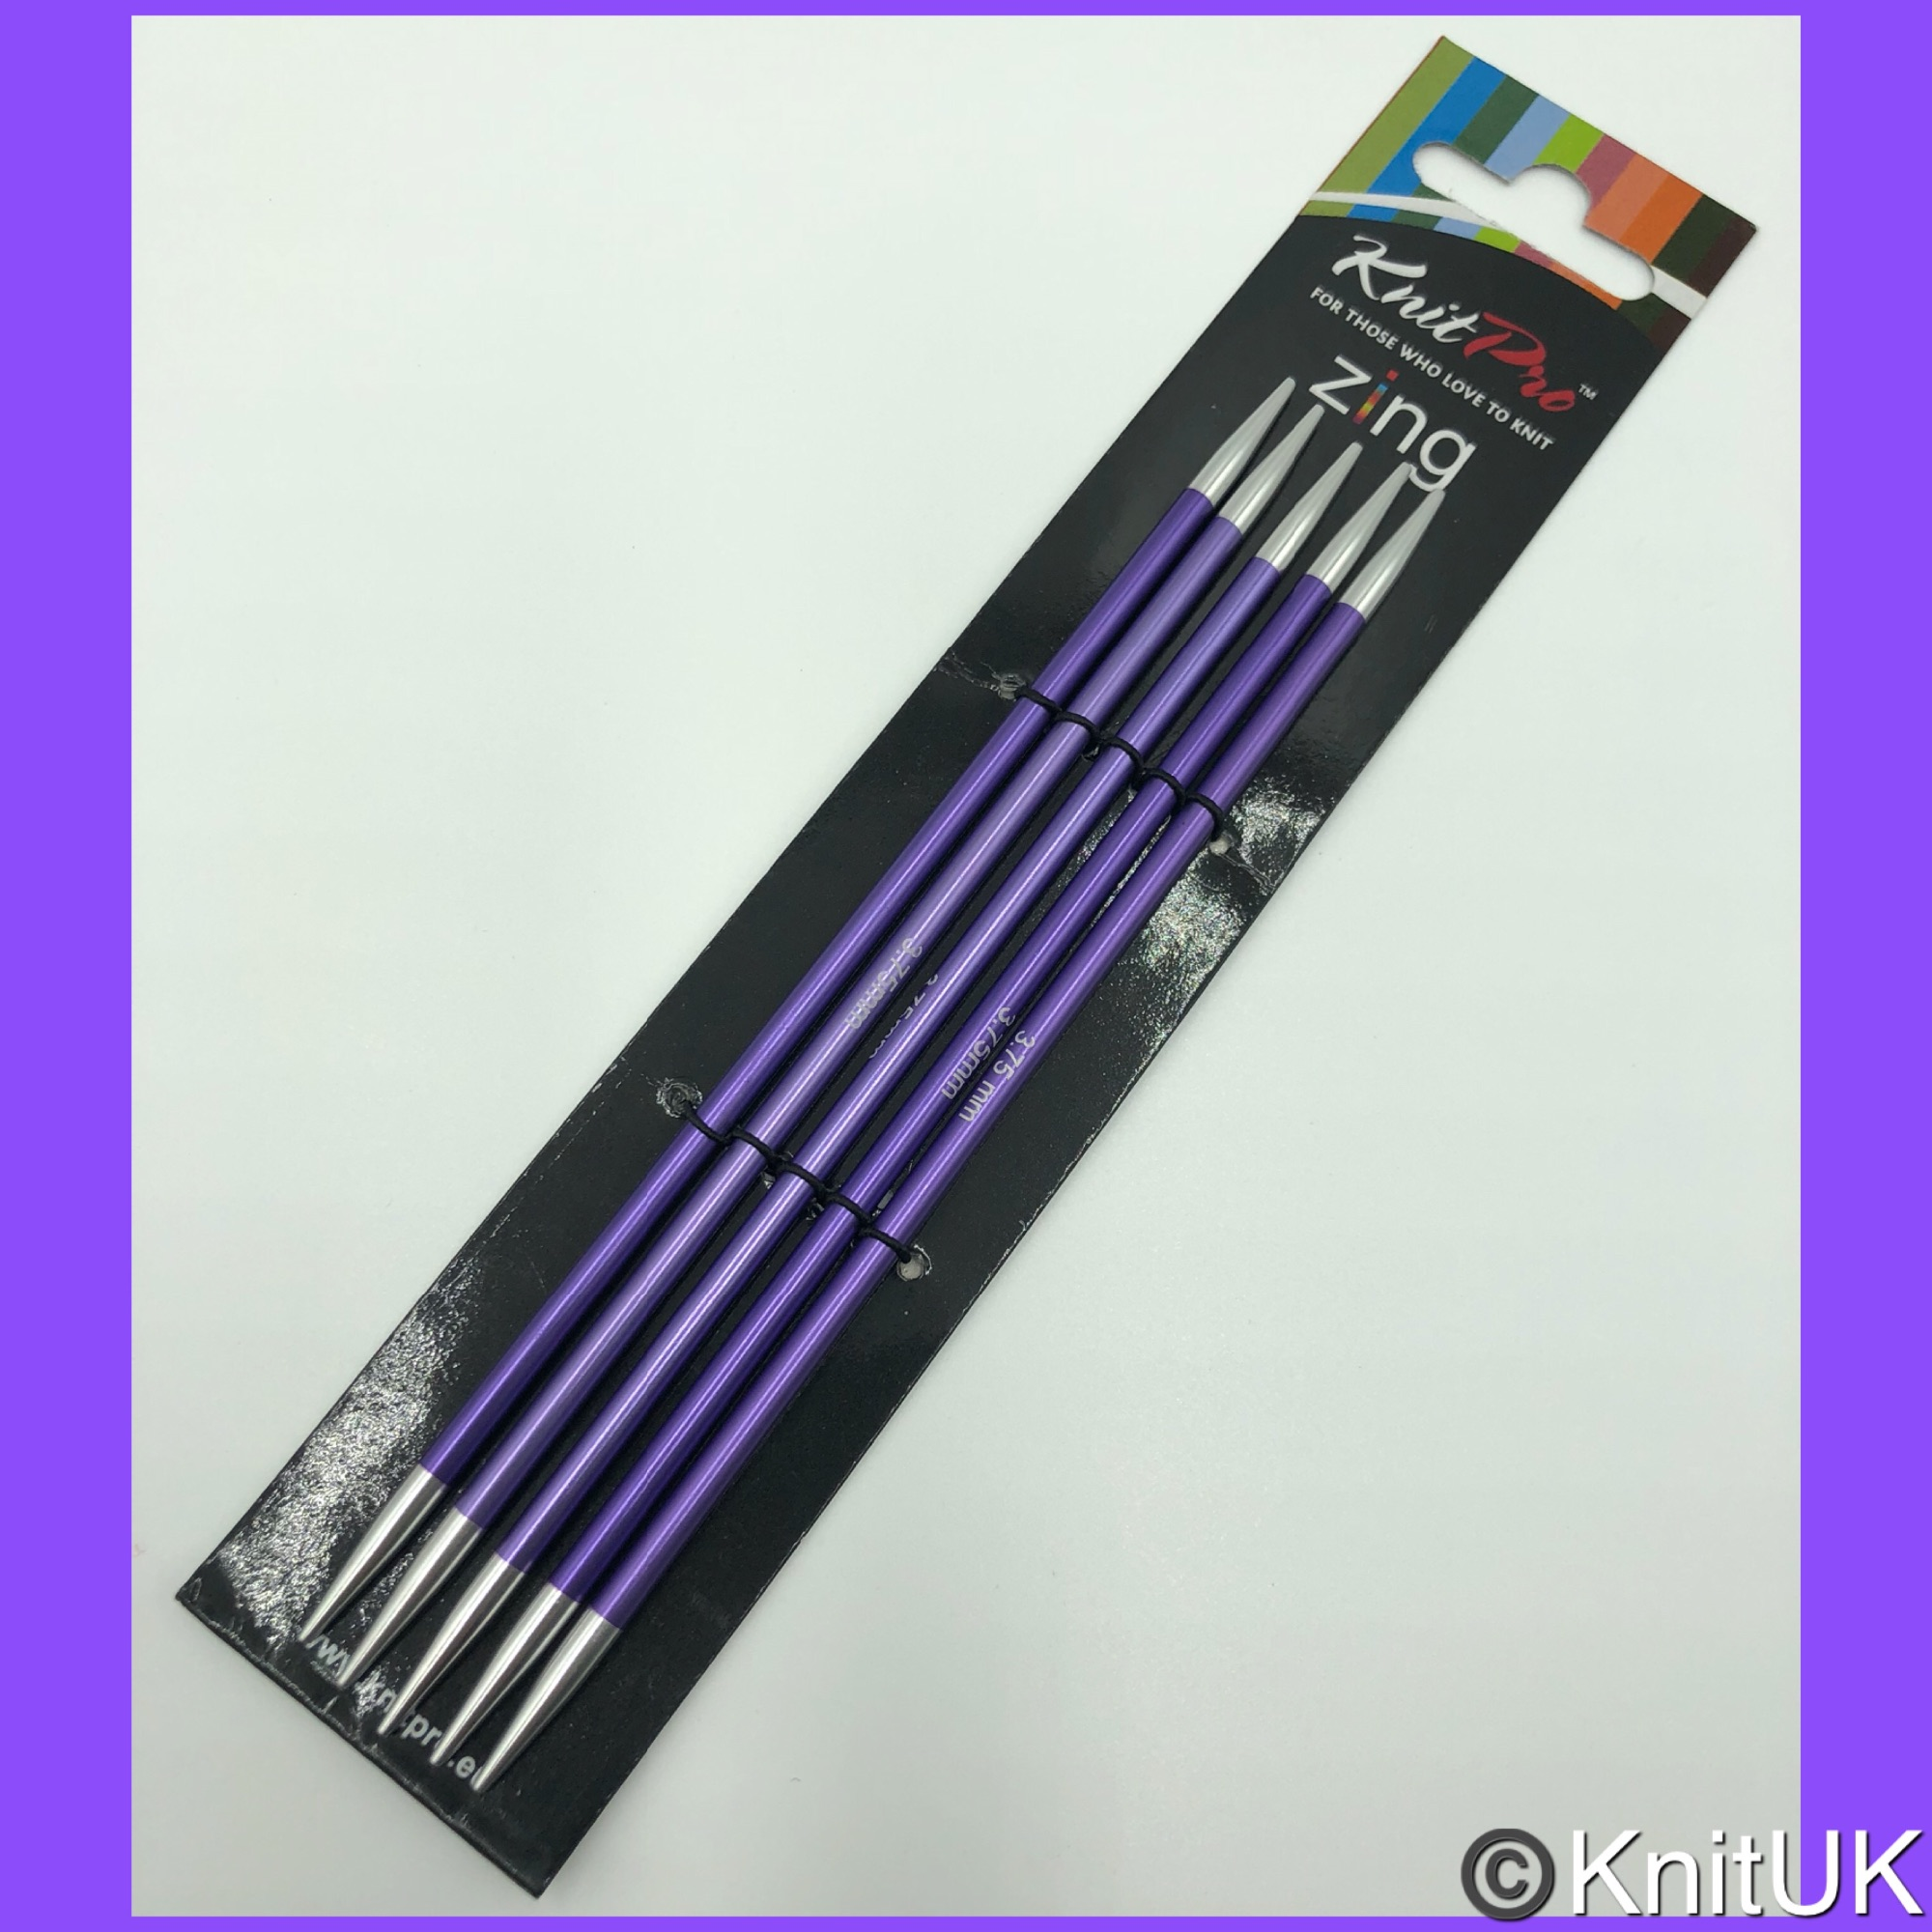 knitpro zing 15cm double point knitting needles set 5 Package